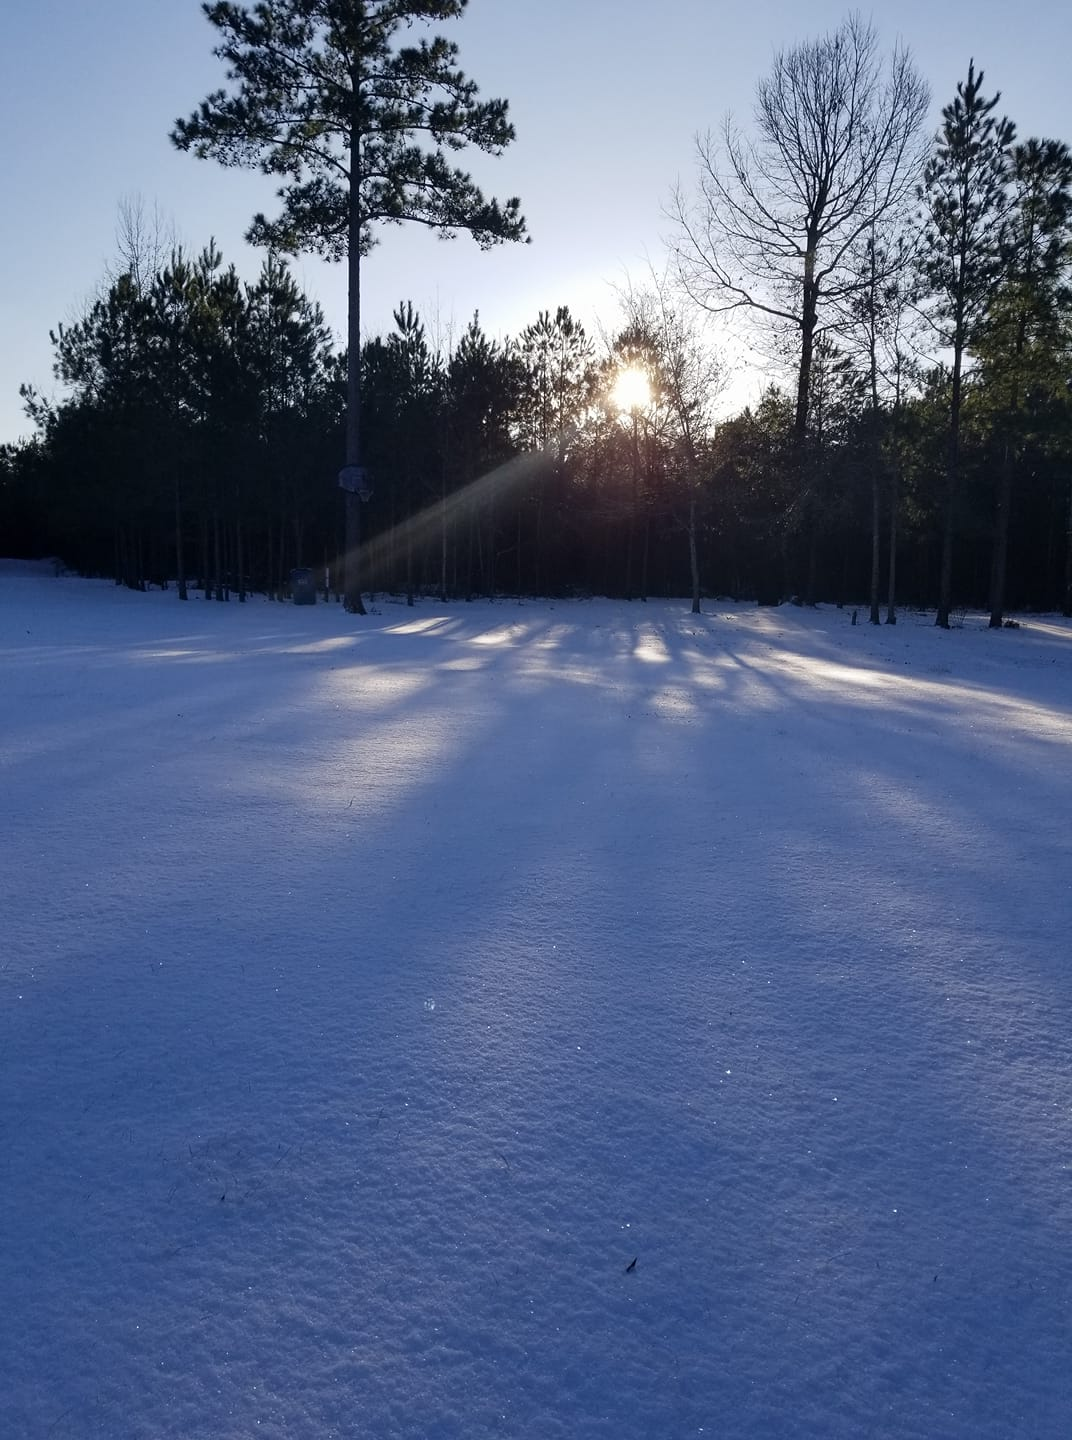 (image: WPMI) Gallery: Local winter weather